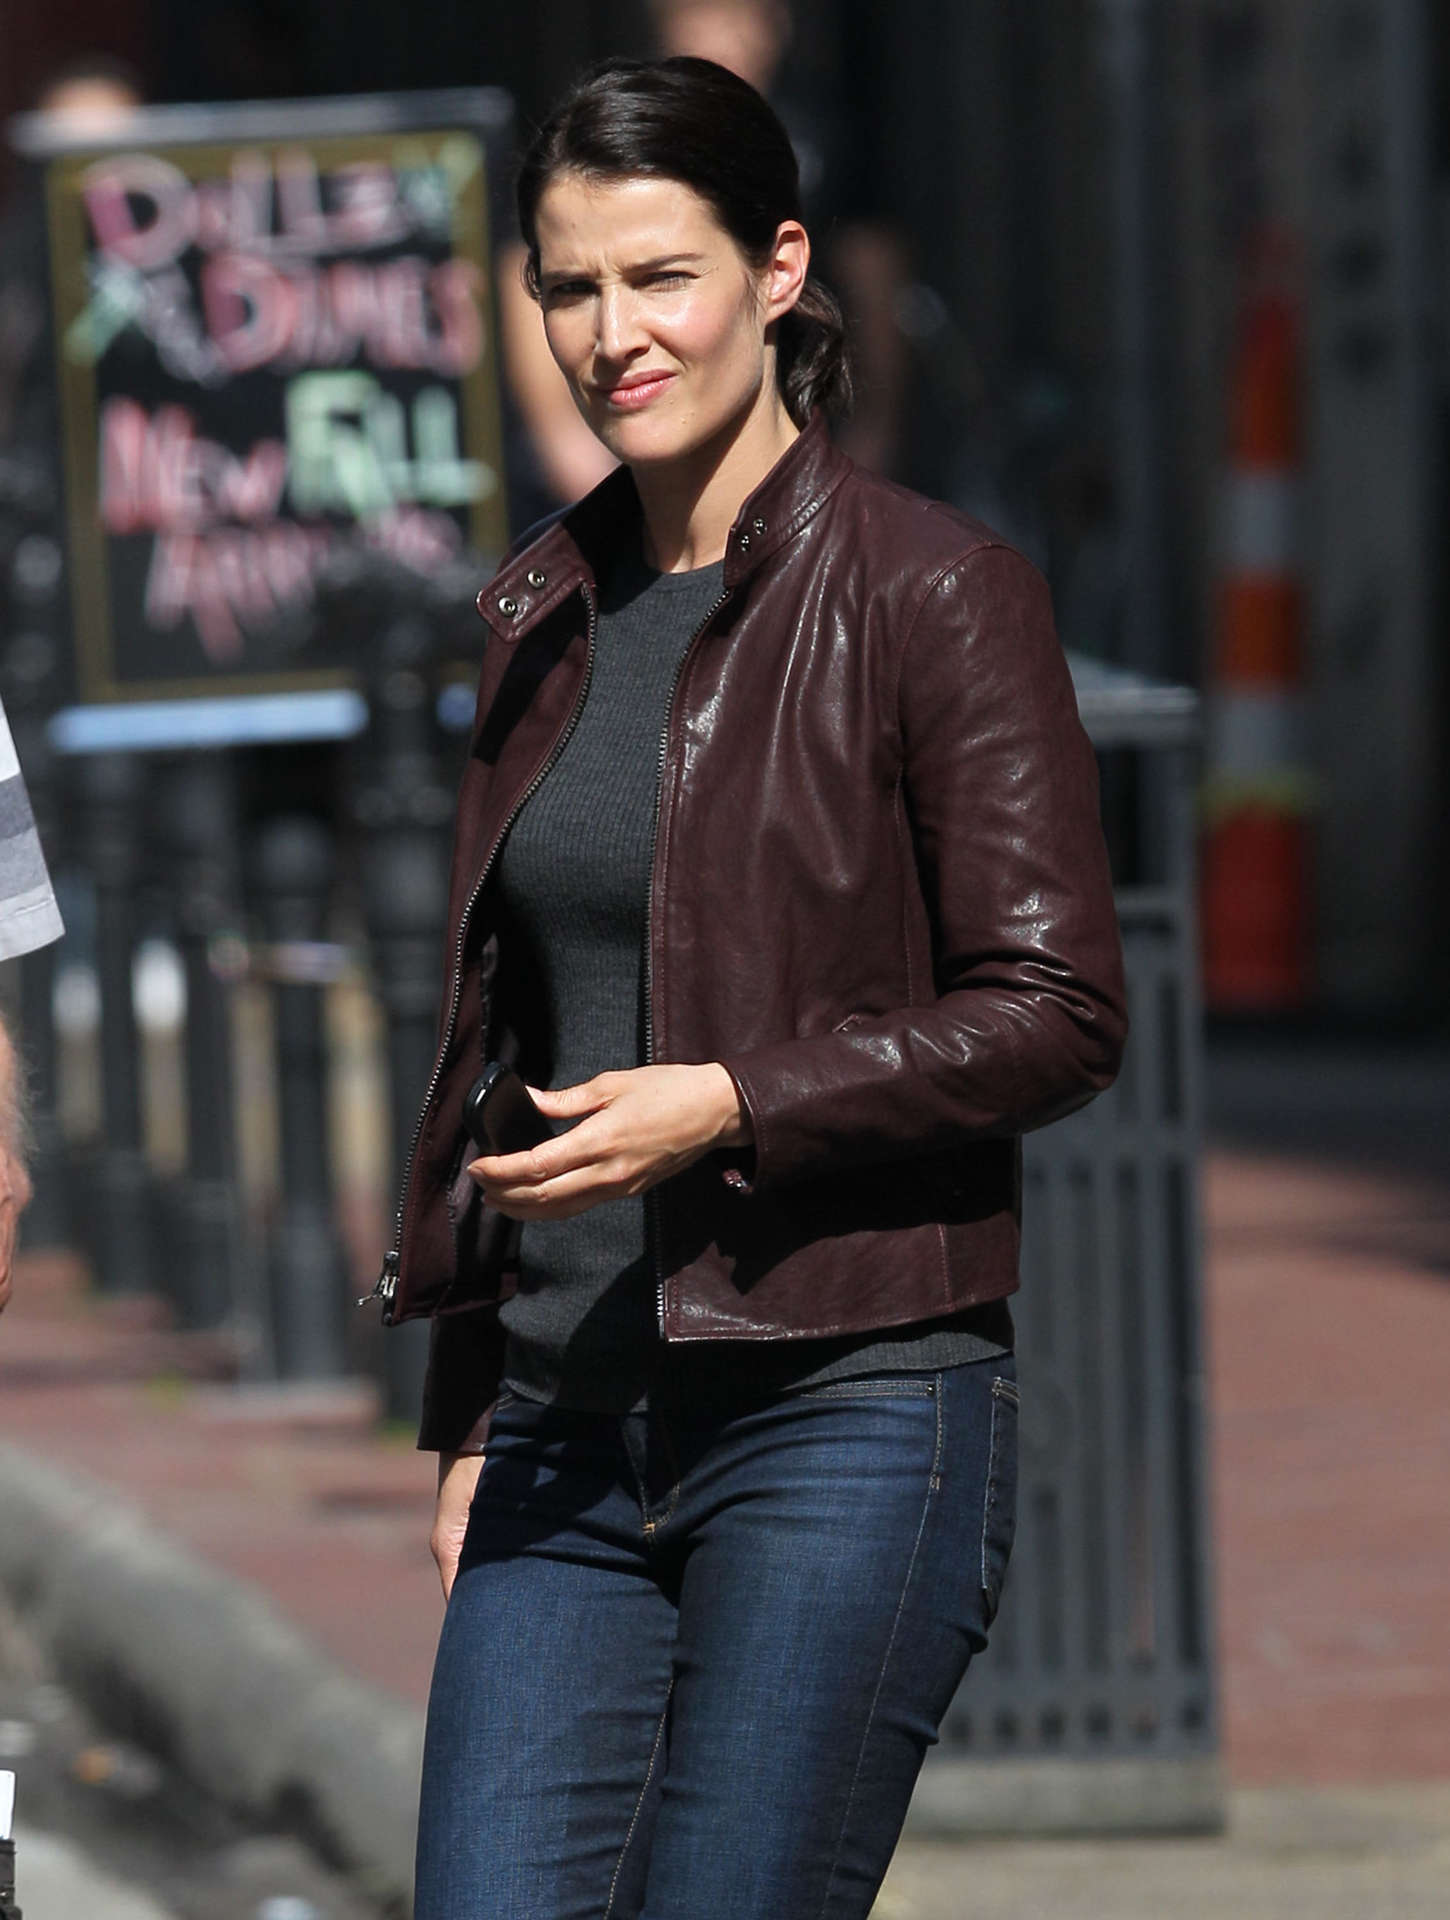 Cobie smulders in jack reacher never back movie gallery